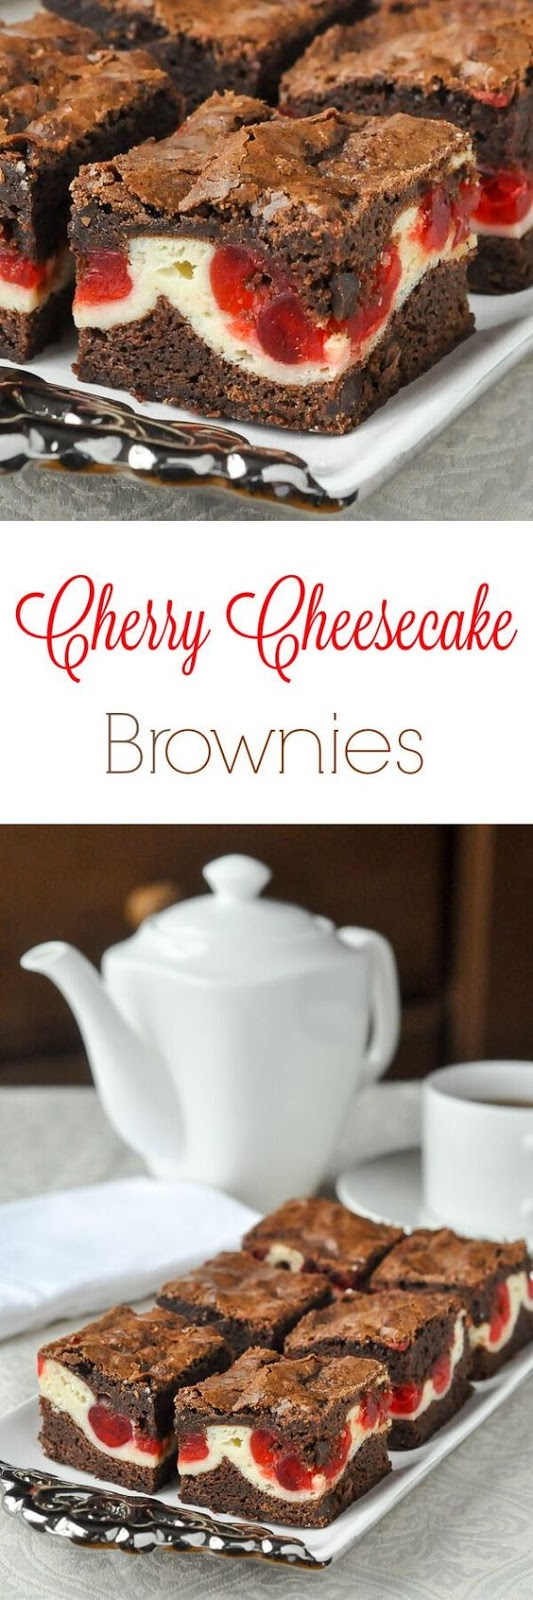 Coconut Flour Brownies (paleo, gluten-free, dairy-free)